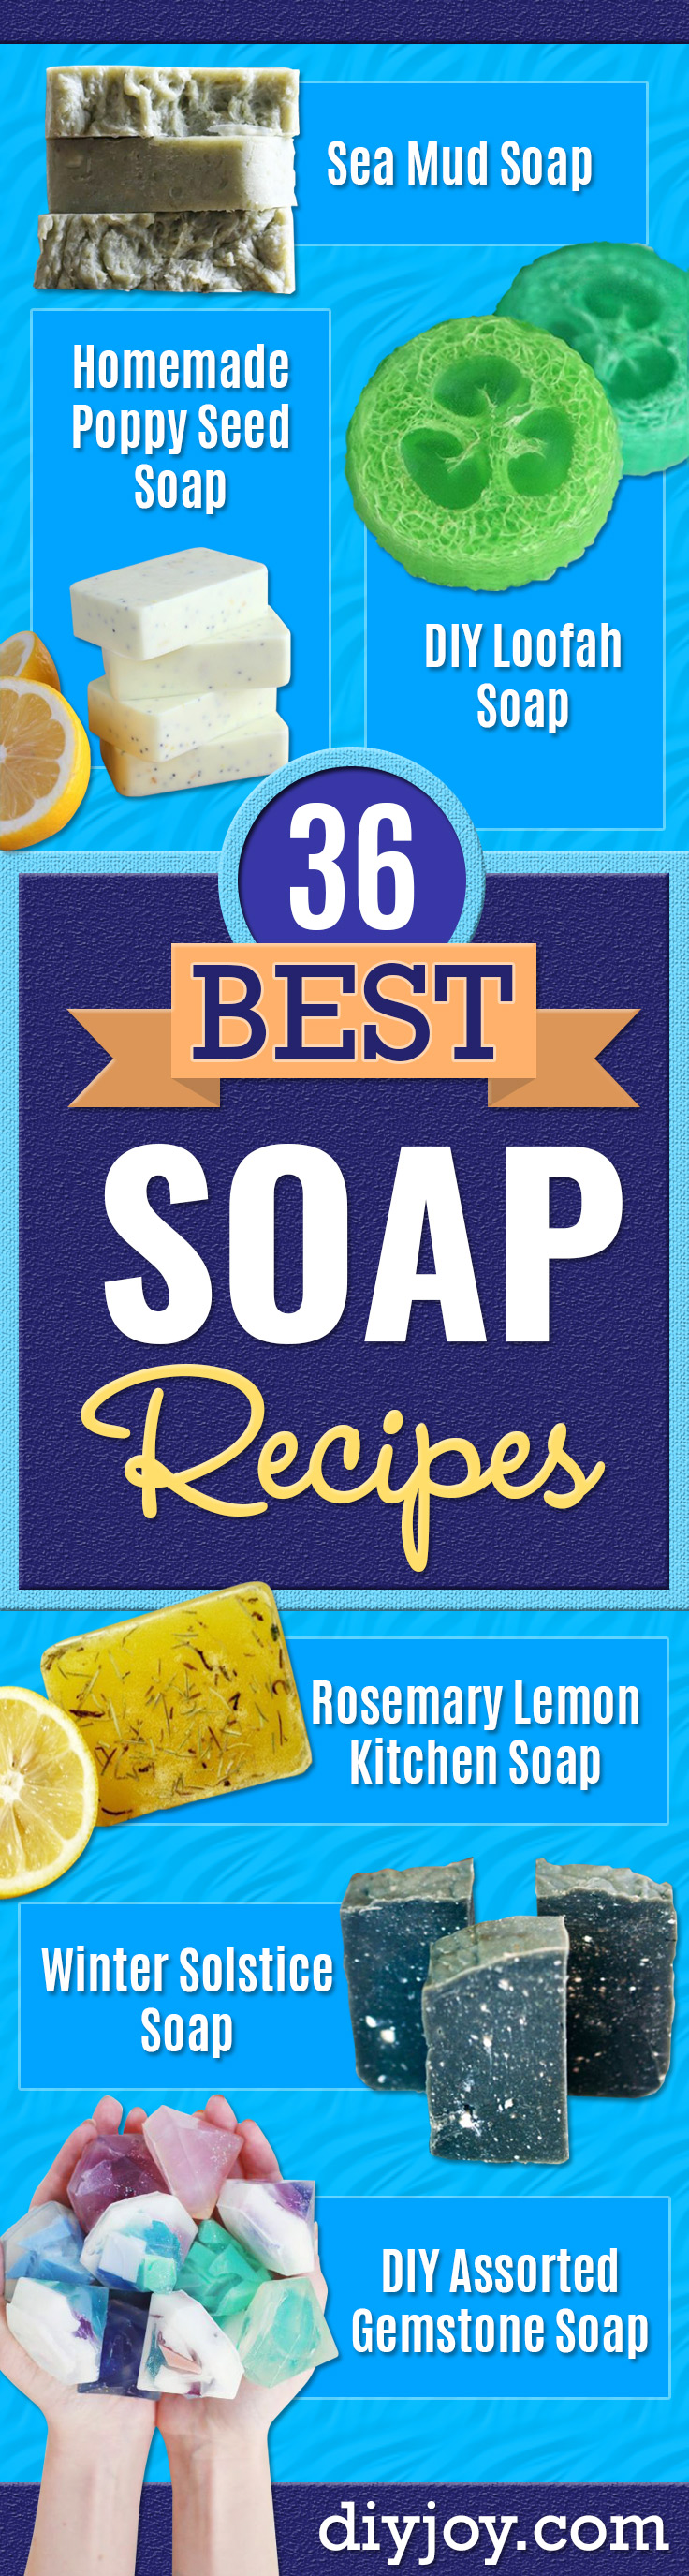 diy soap recipes homemade- Melt and Pour, Homemade Recipe Without Lye - Natural Soap crafts for Kids - Shea Butter, Essential Oils, Easy Ides With 3 Ingredients - soap making tutorial #soap #diygifts